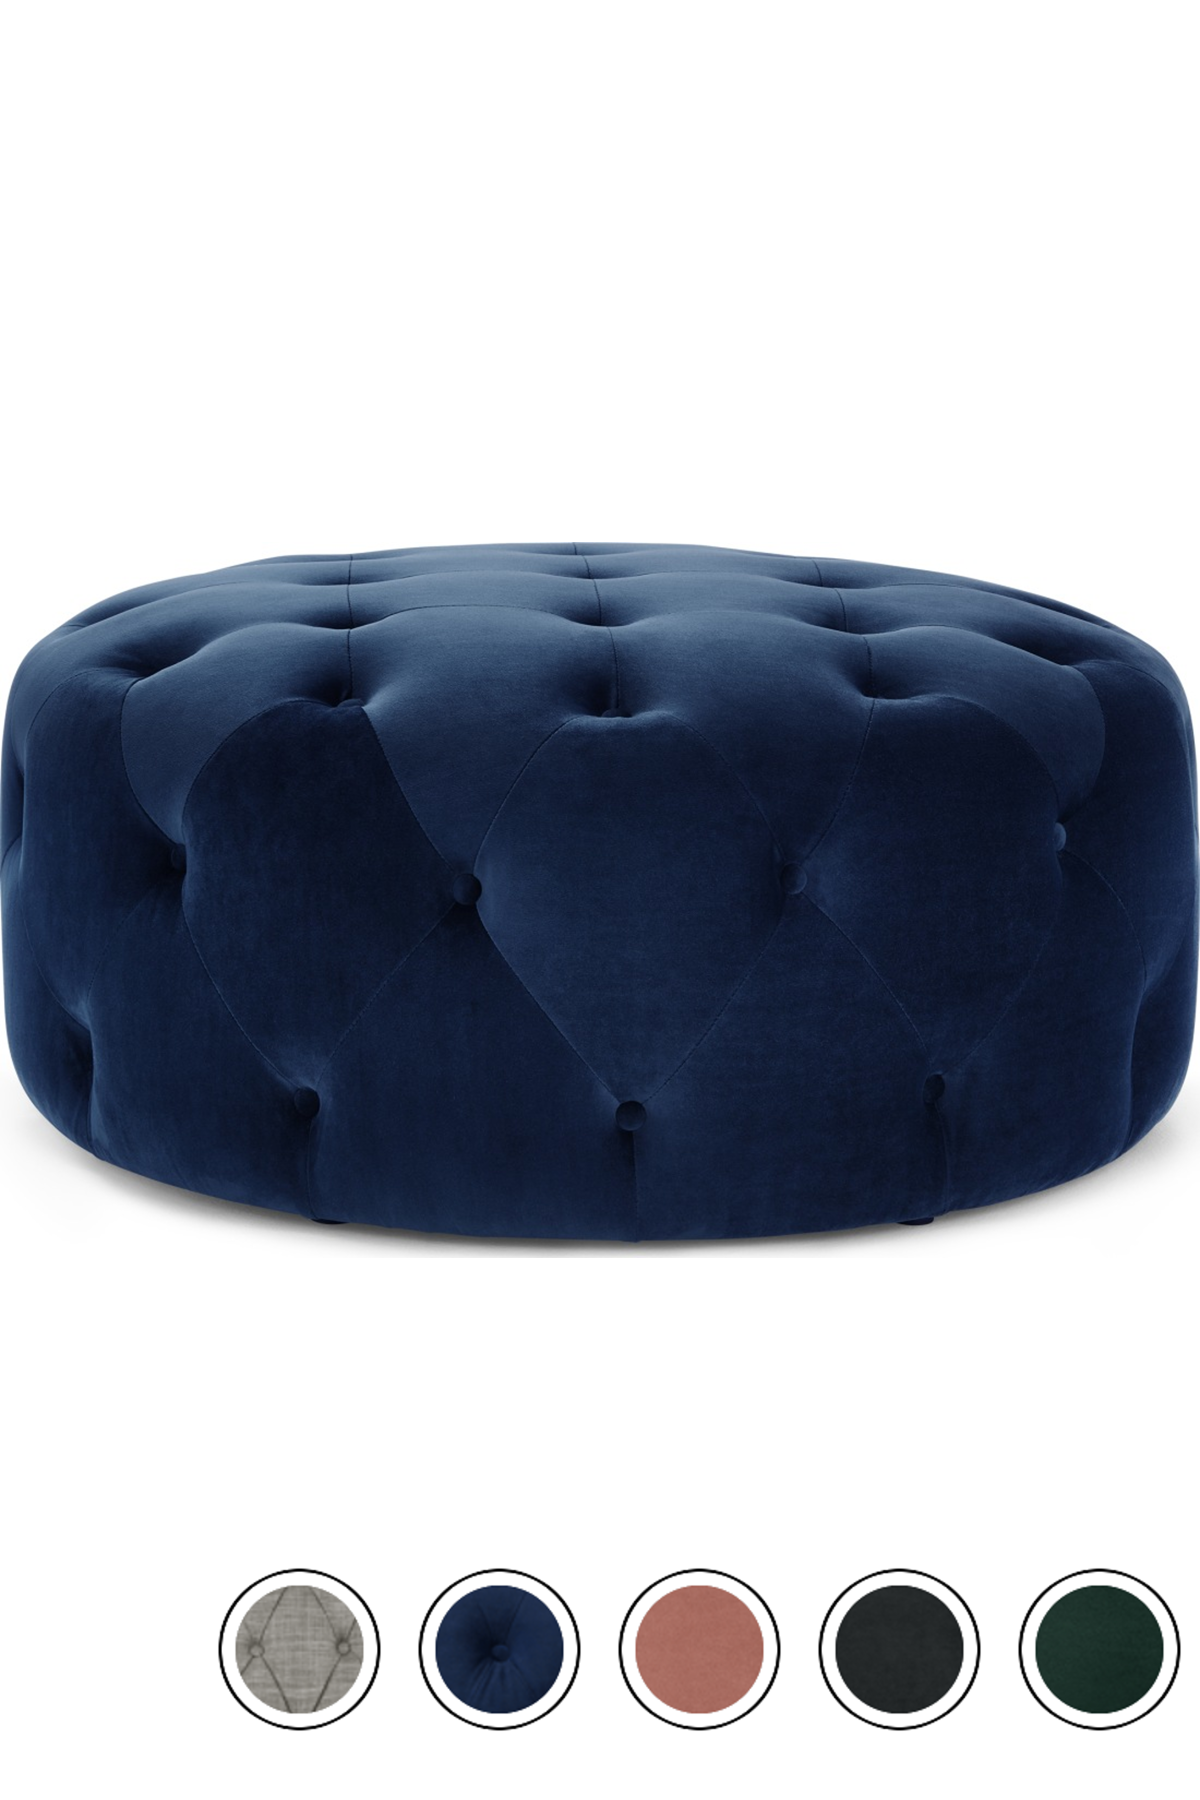 Made Large Round Pouffe Velvet Electric Blue Hampton Pouffes Footstools Collection From Made Com Pouffe The Hamptons Electric Blue